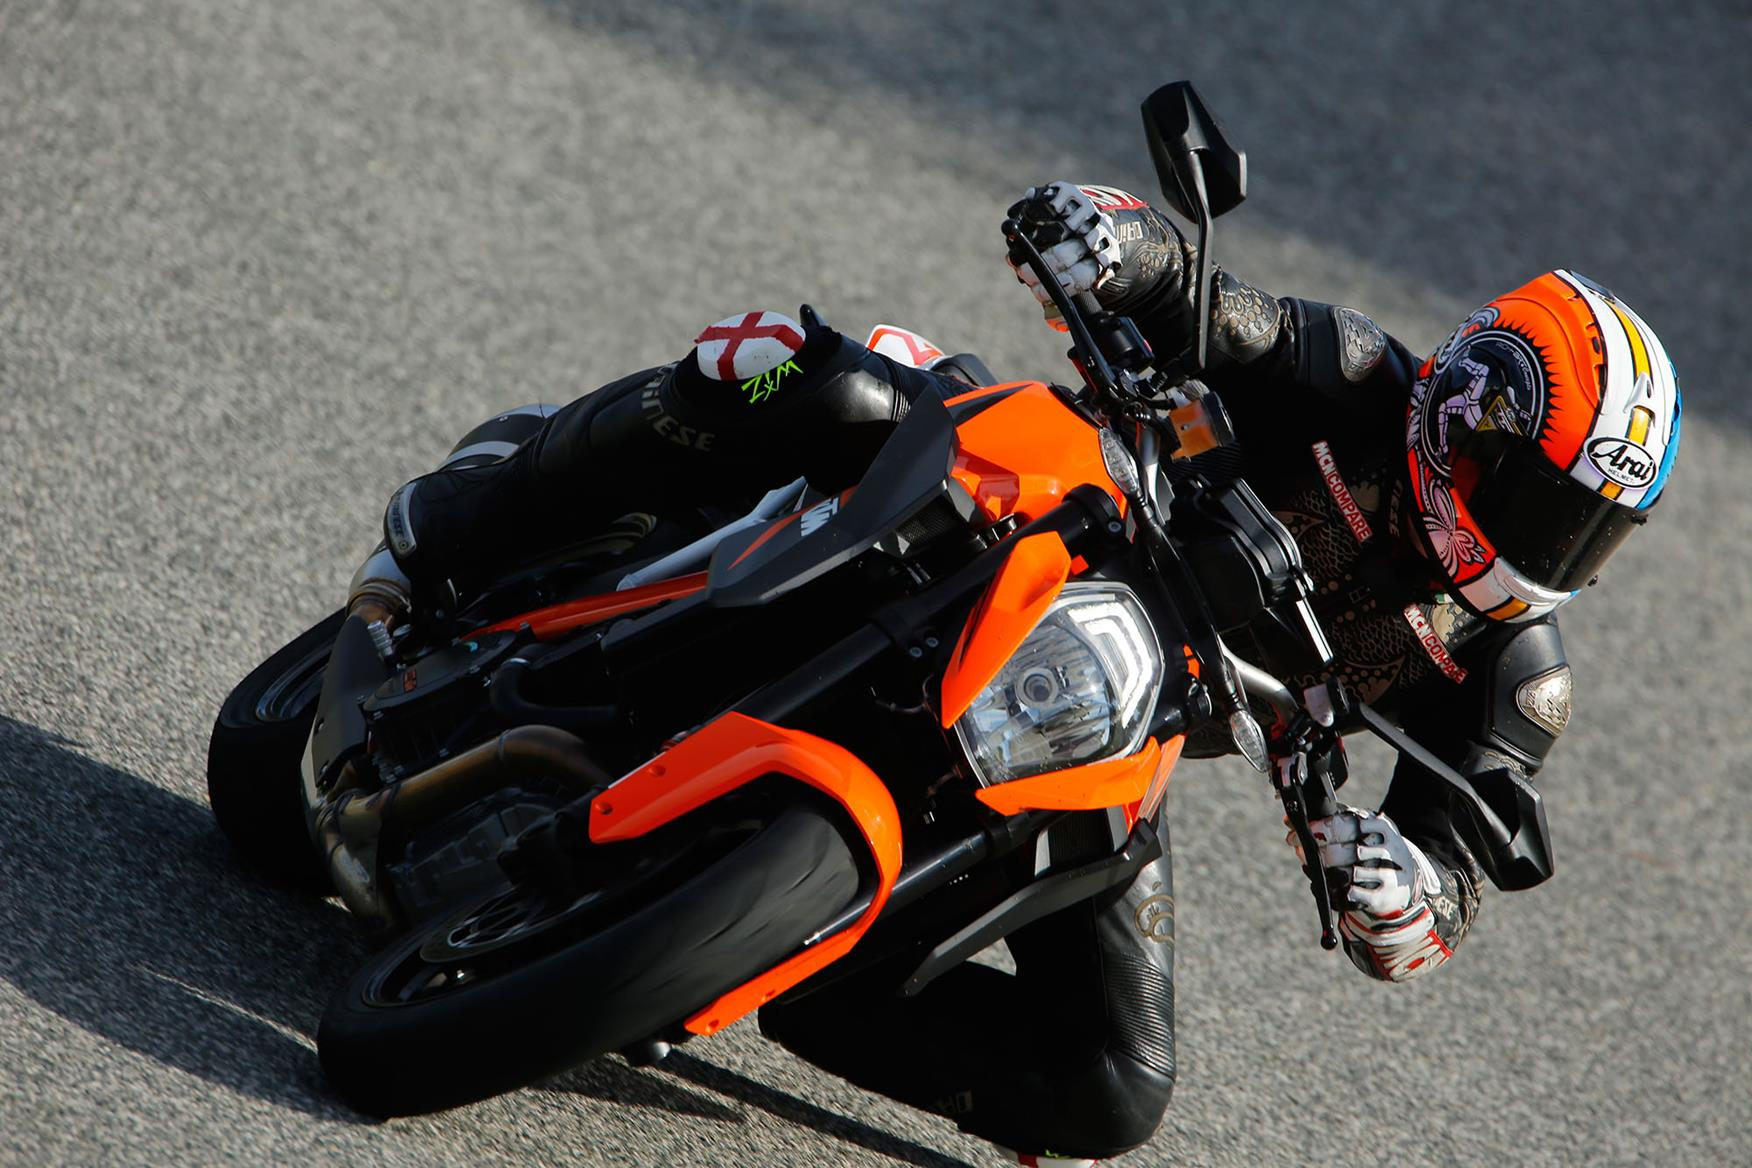 KTM 1290 Super Duke R left turn